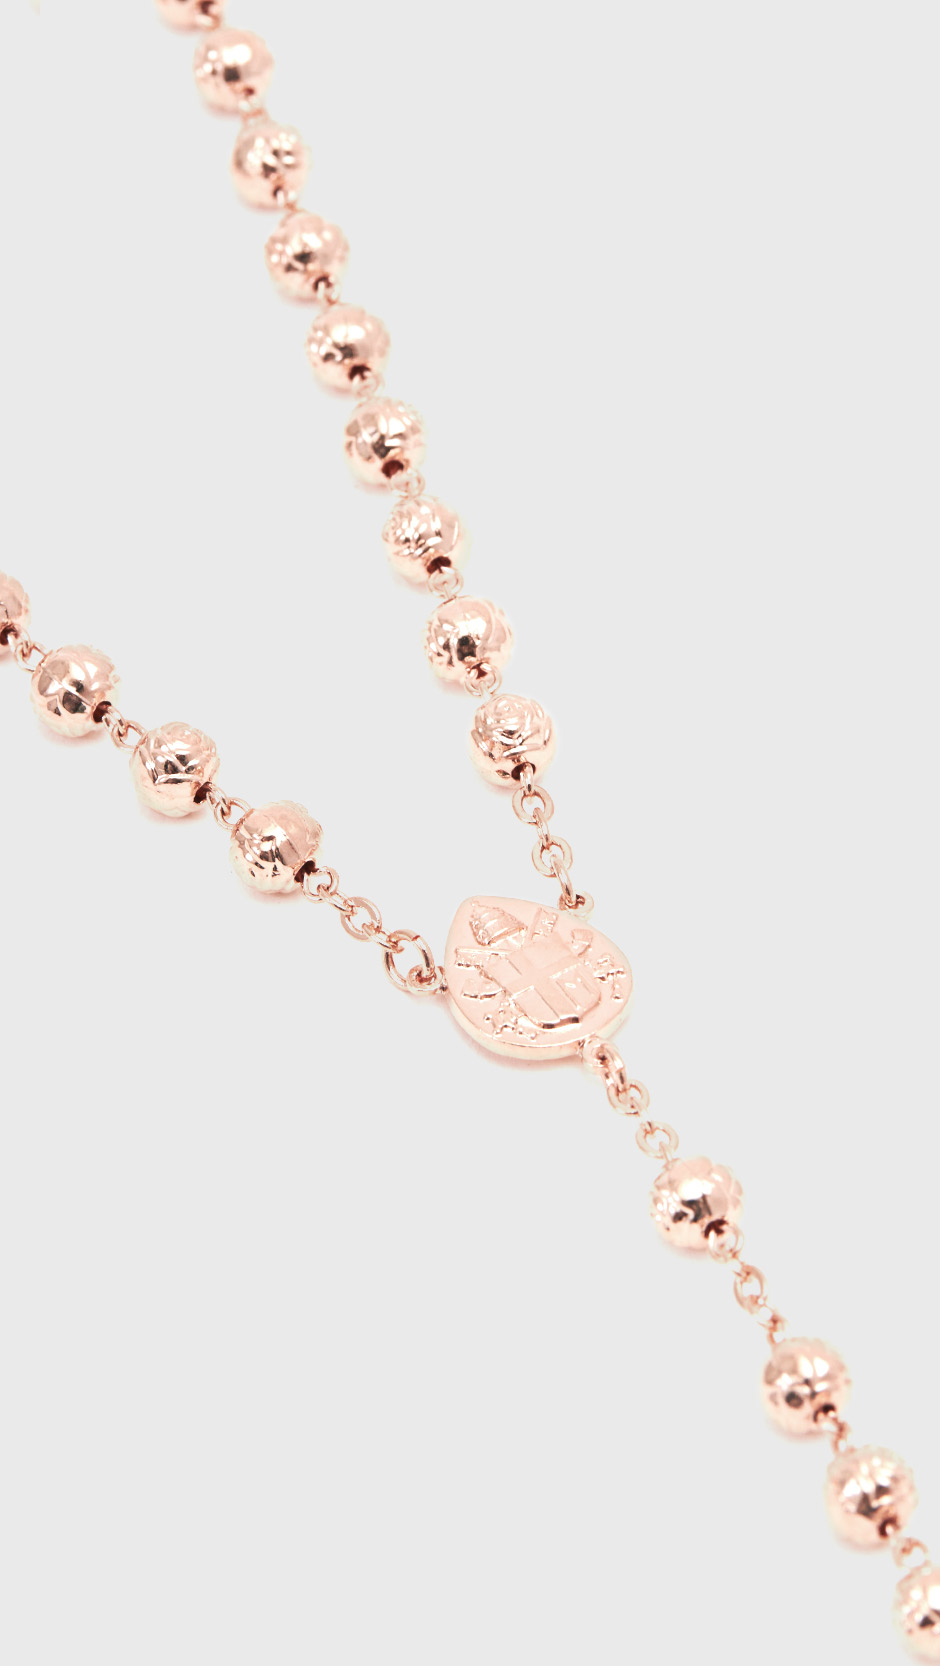 Lana Rose Gold Jewelry Jewelry Ideas